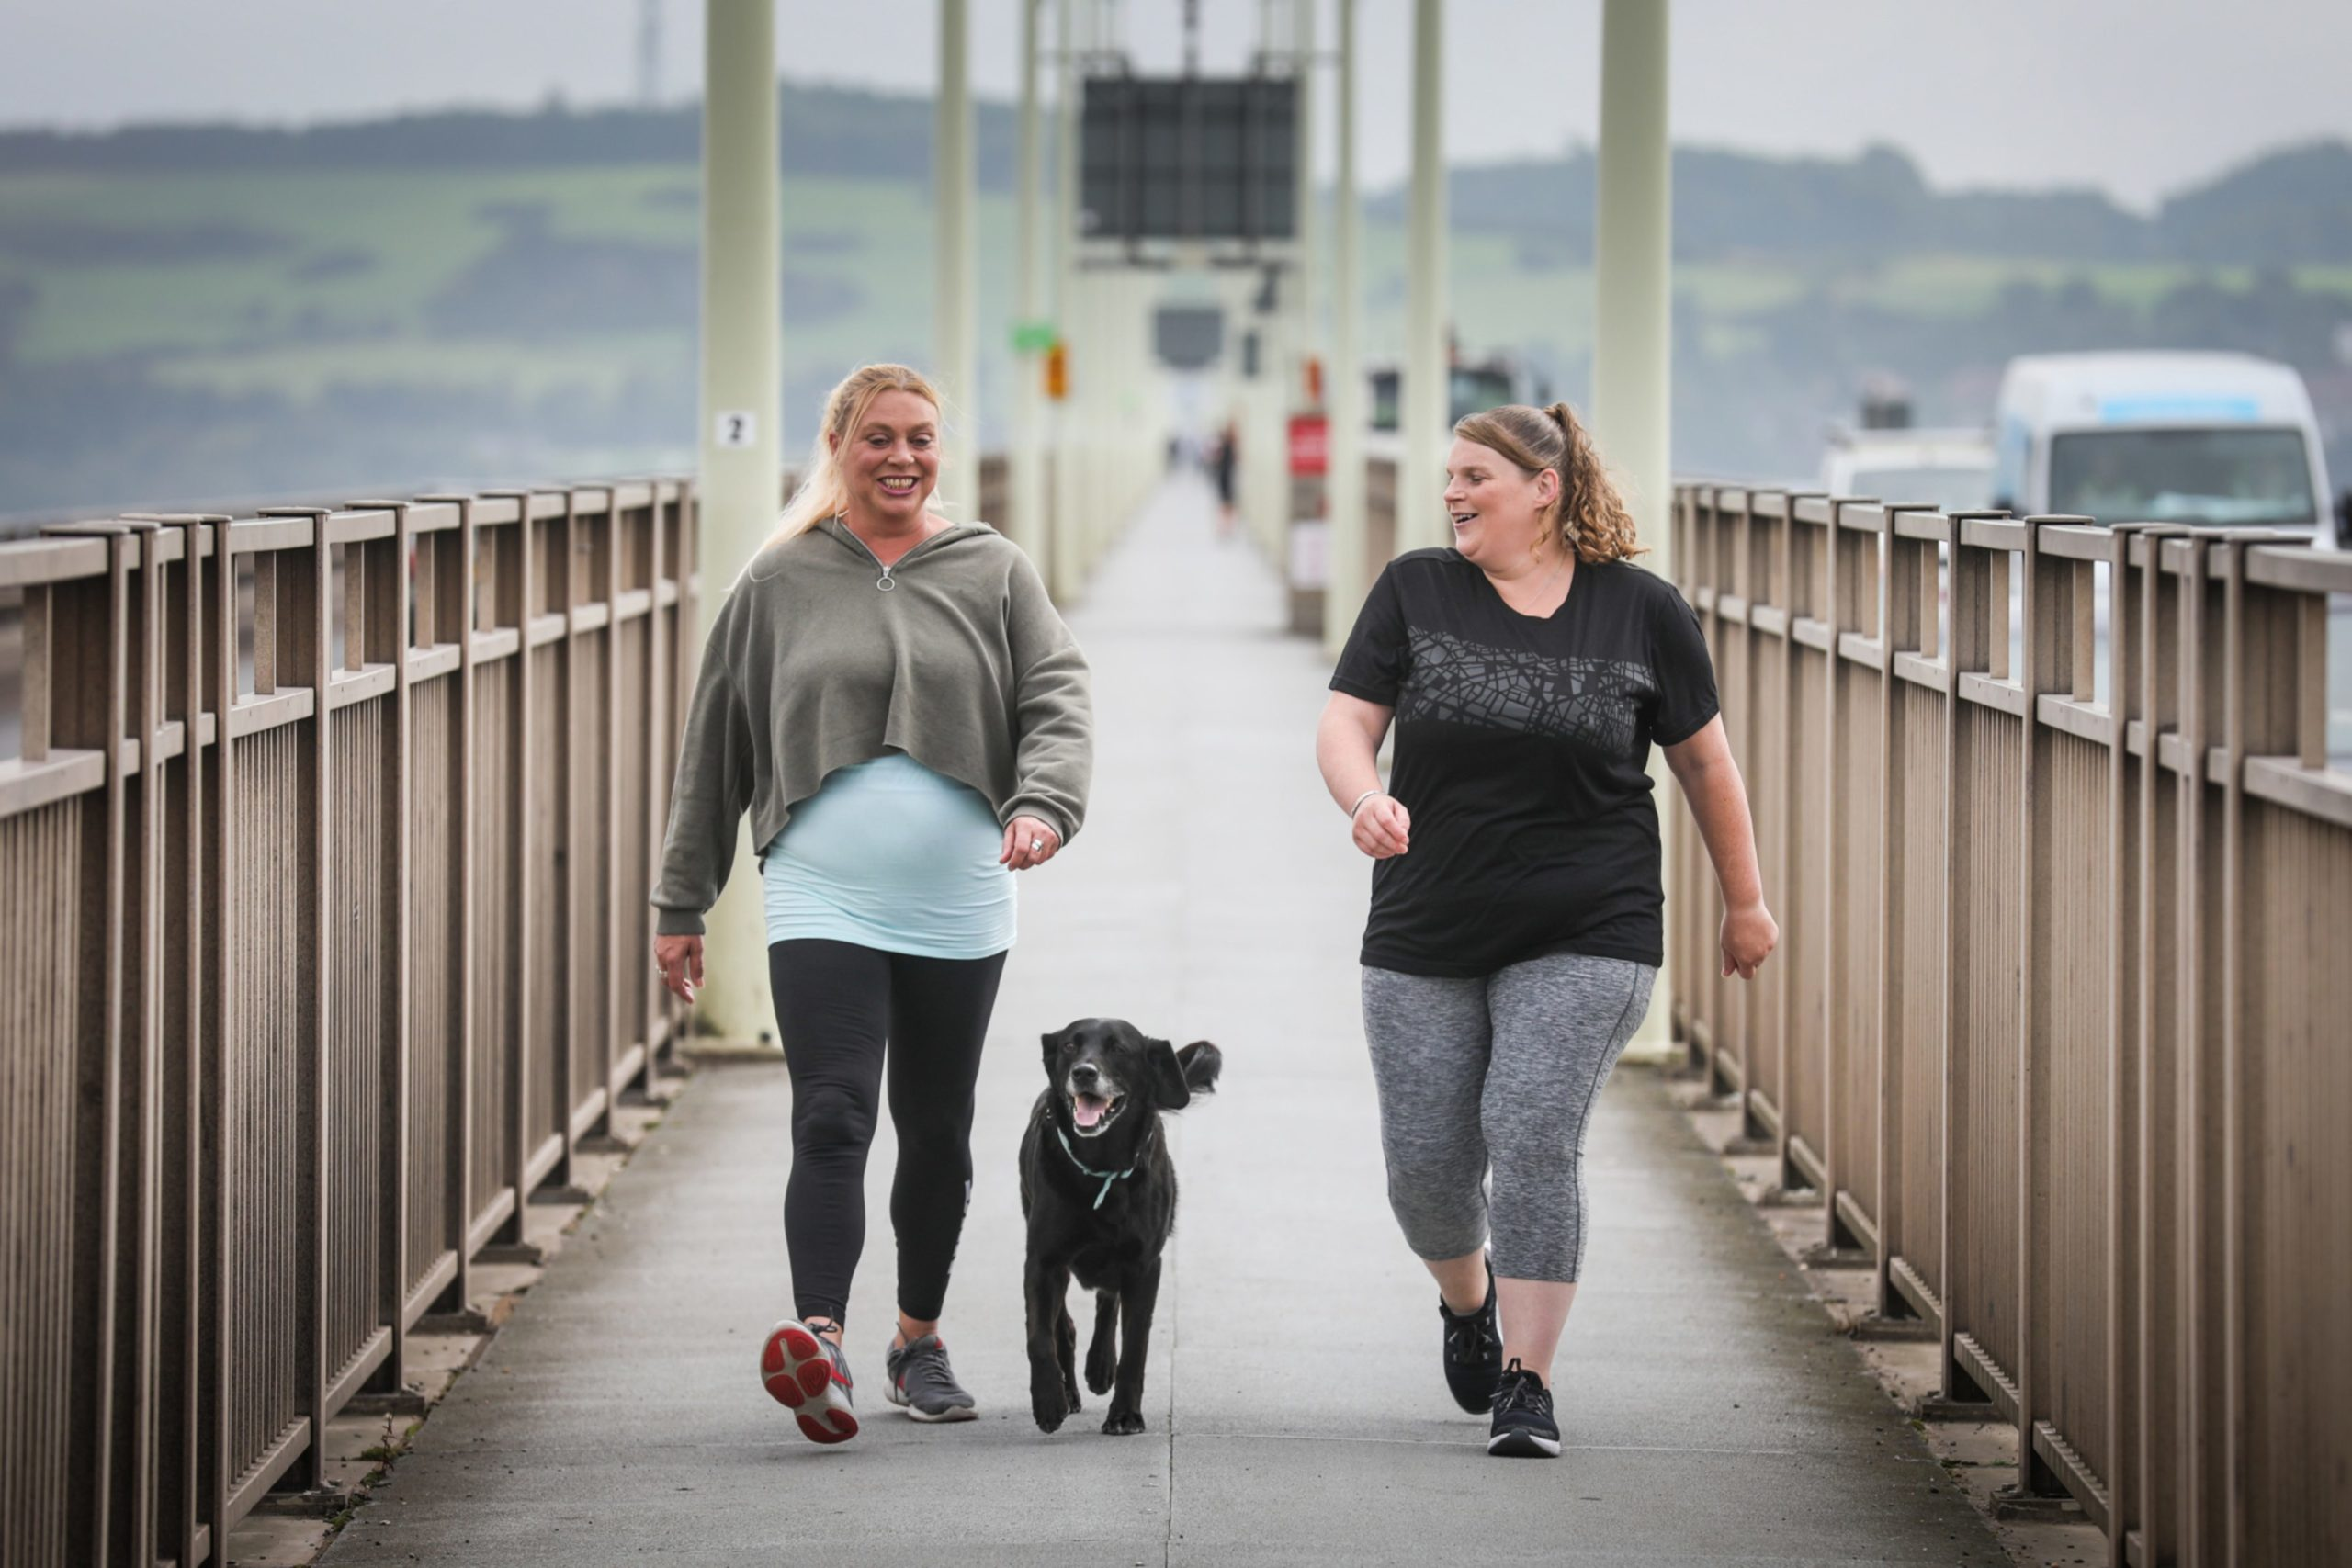 Valerie Lindsay and Chez Lesley are to be leading a sponsored walk from the Tay Bridge to the Forth Road Bridge on August 29 in aid of Andy's Man Club. Here the pair are with 14-year-old labrador Skip who will walk with them. (Picture: Mhairi Edwards/DCT Media)